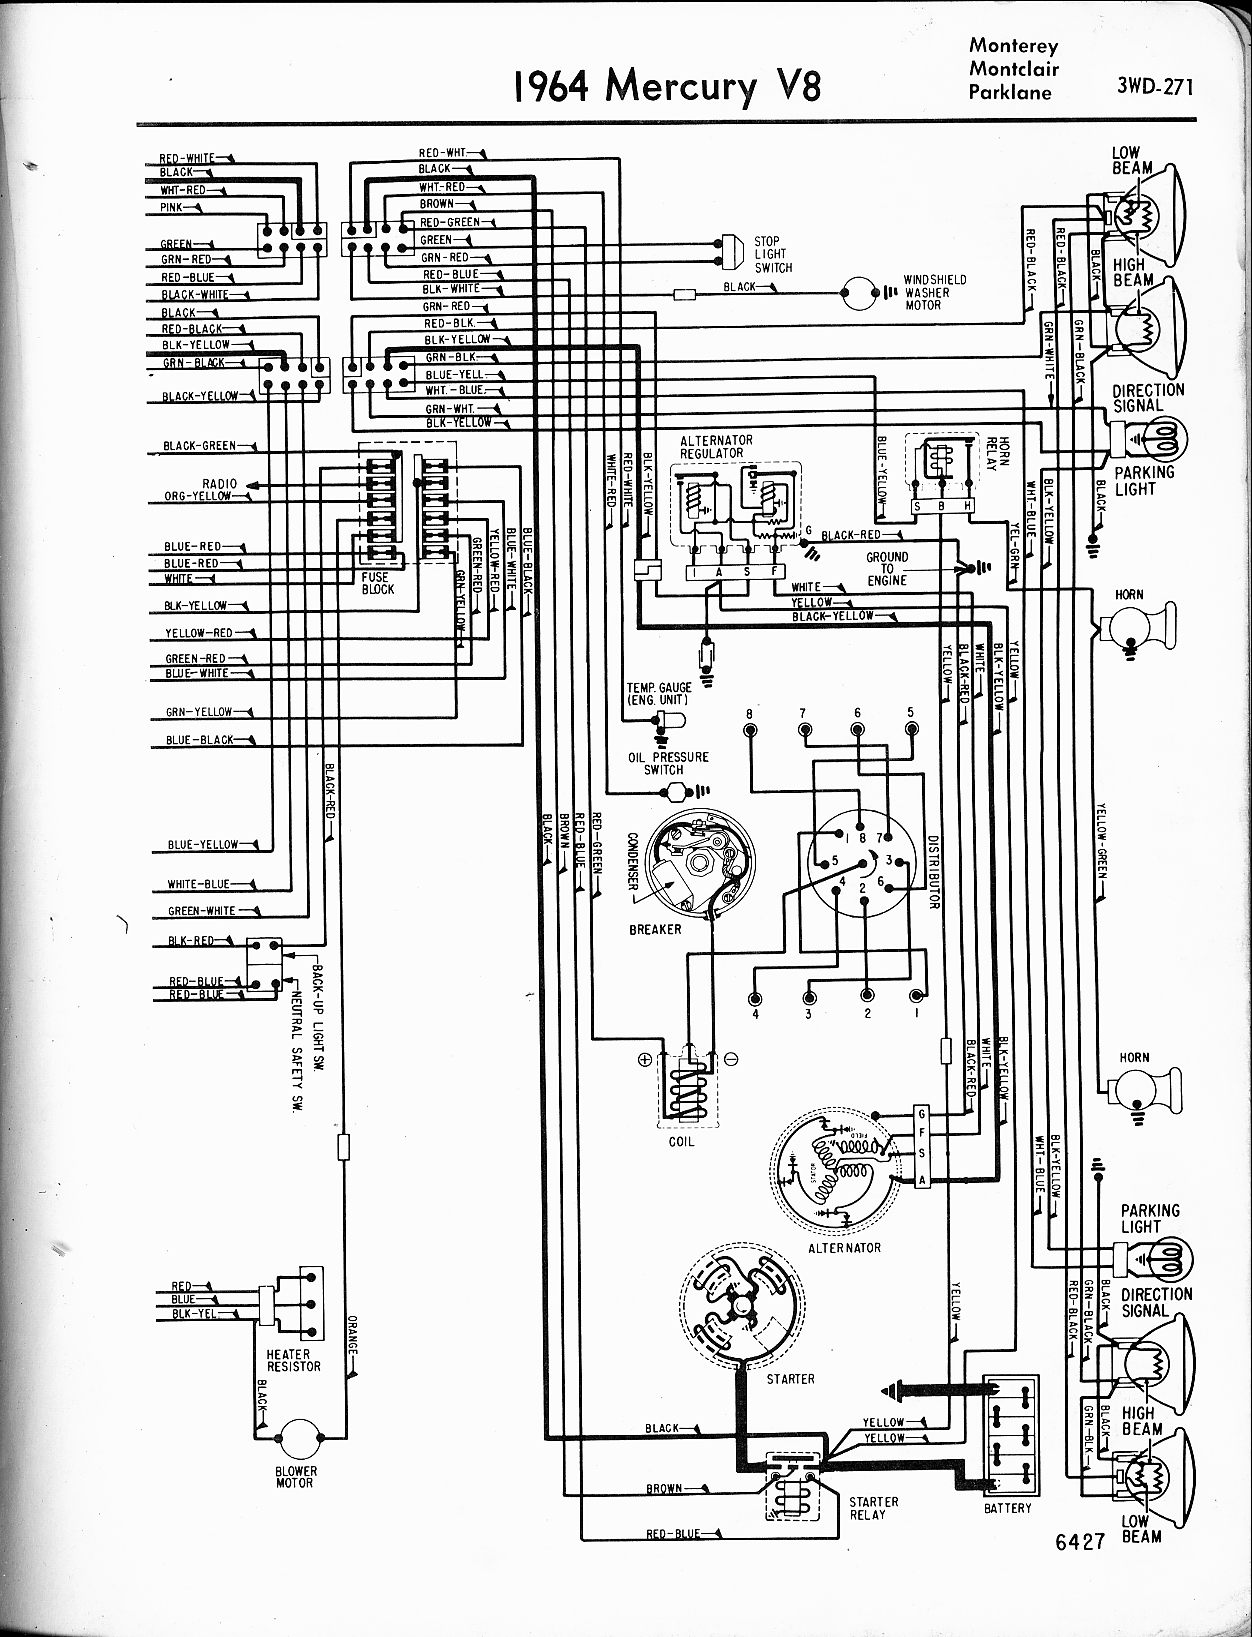 MWire5765 271 mercury wiring diagrams the old car manual project 1964 thunderbird wiring diagram at bayanpartner.co